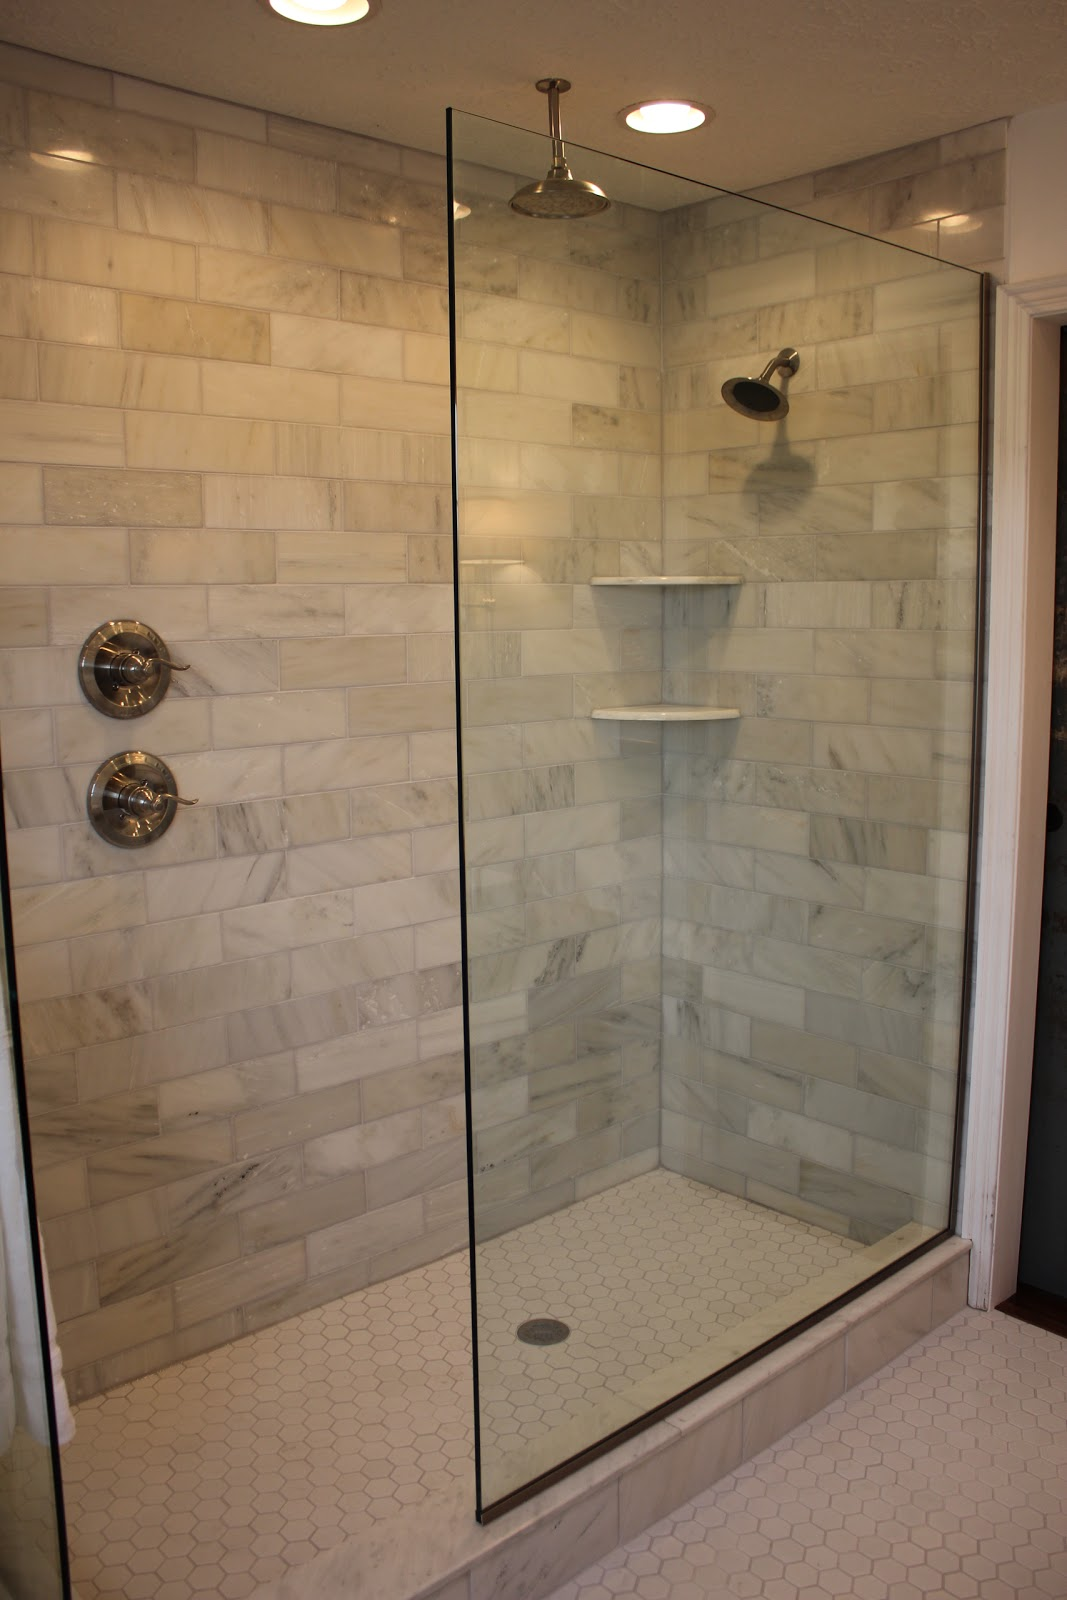 Design decor and remodel projects Bathroom wall tile